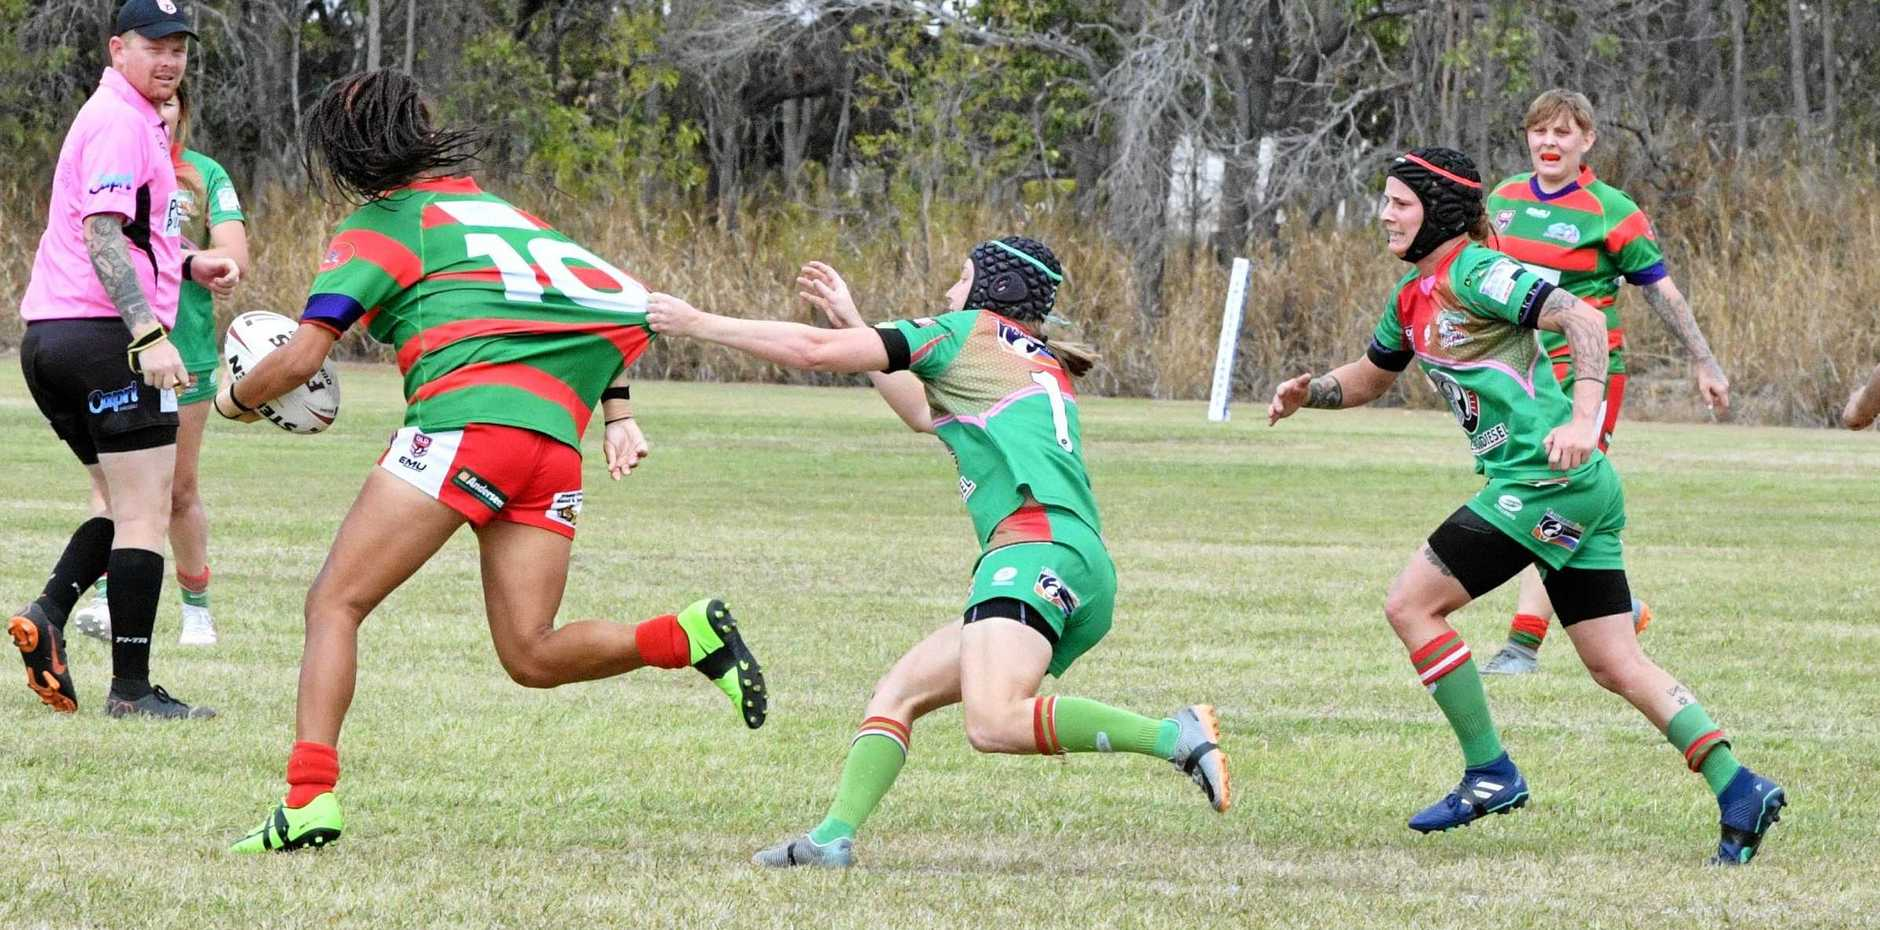 Hervey Bay's Sharneeka Doyle is tackled by Tannum's Prue Hair during last weekend's qualifying final held at Valleys Fields.